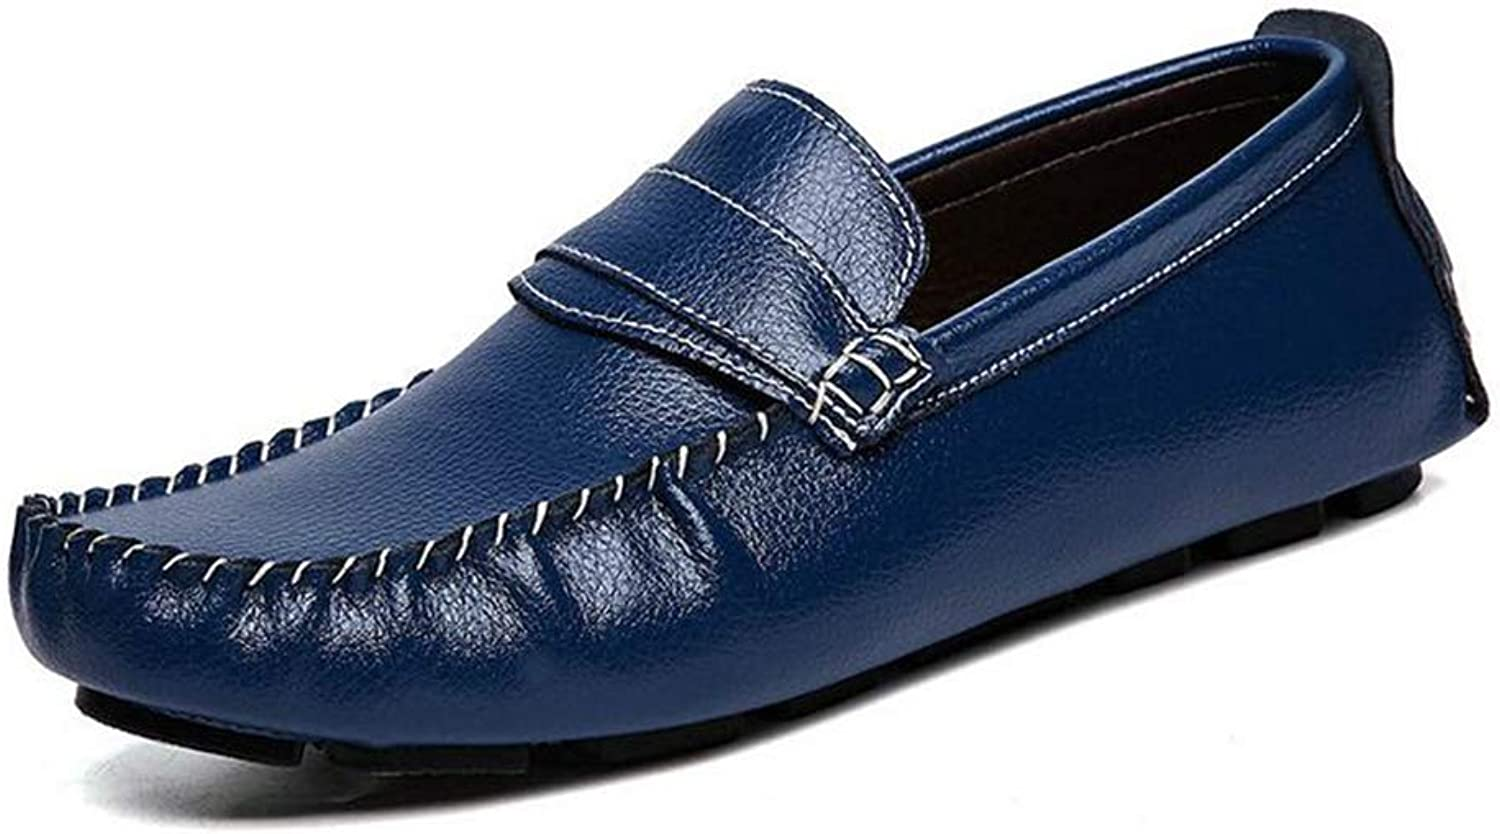 Y-H Men's shoes,2019 New Spring Flat Casual shoes, Loafers & Slip-Ons Lazy shoes Peas shoes Walking shoes,bluee,45